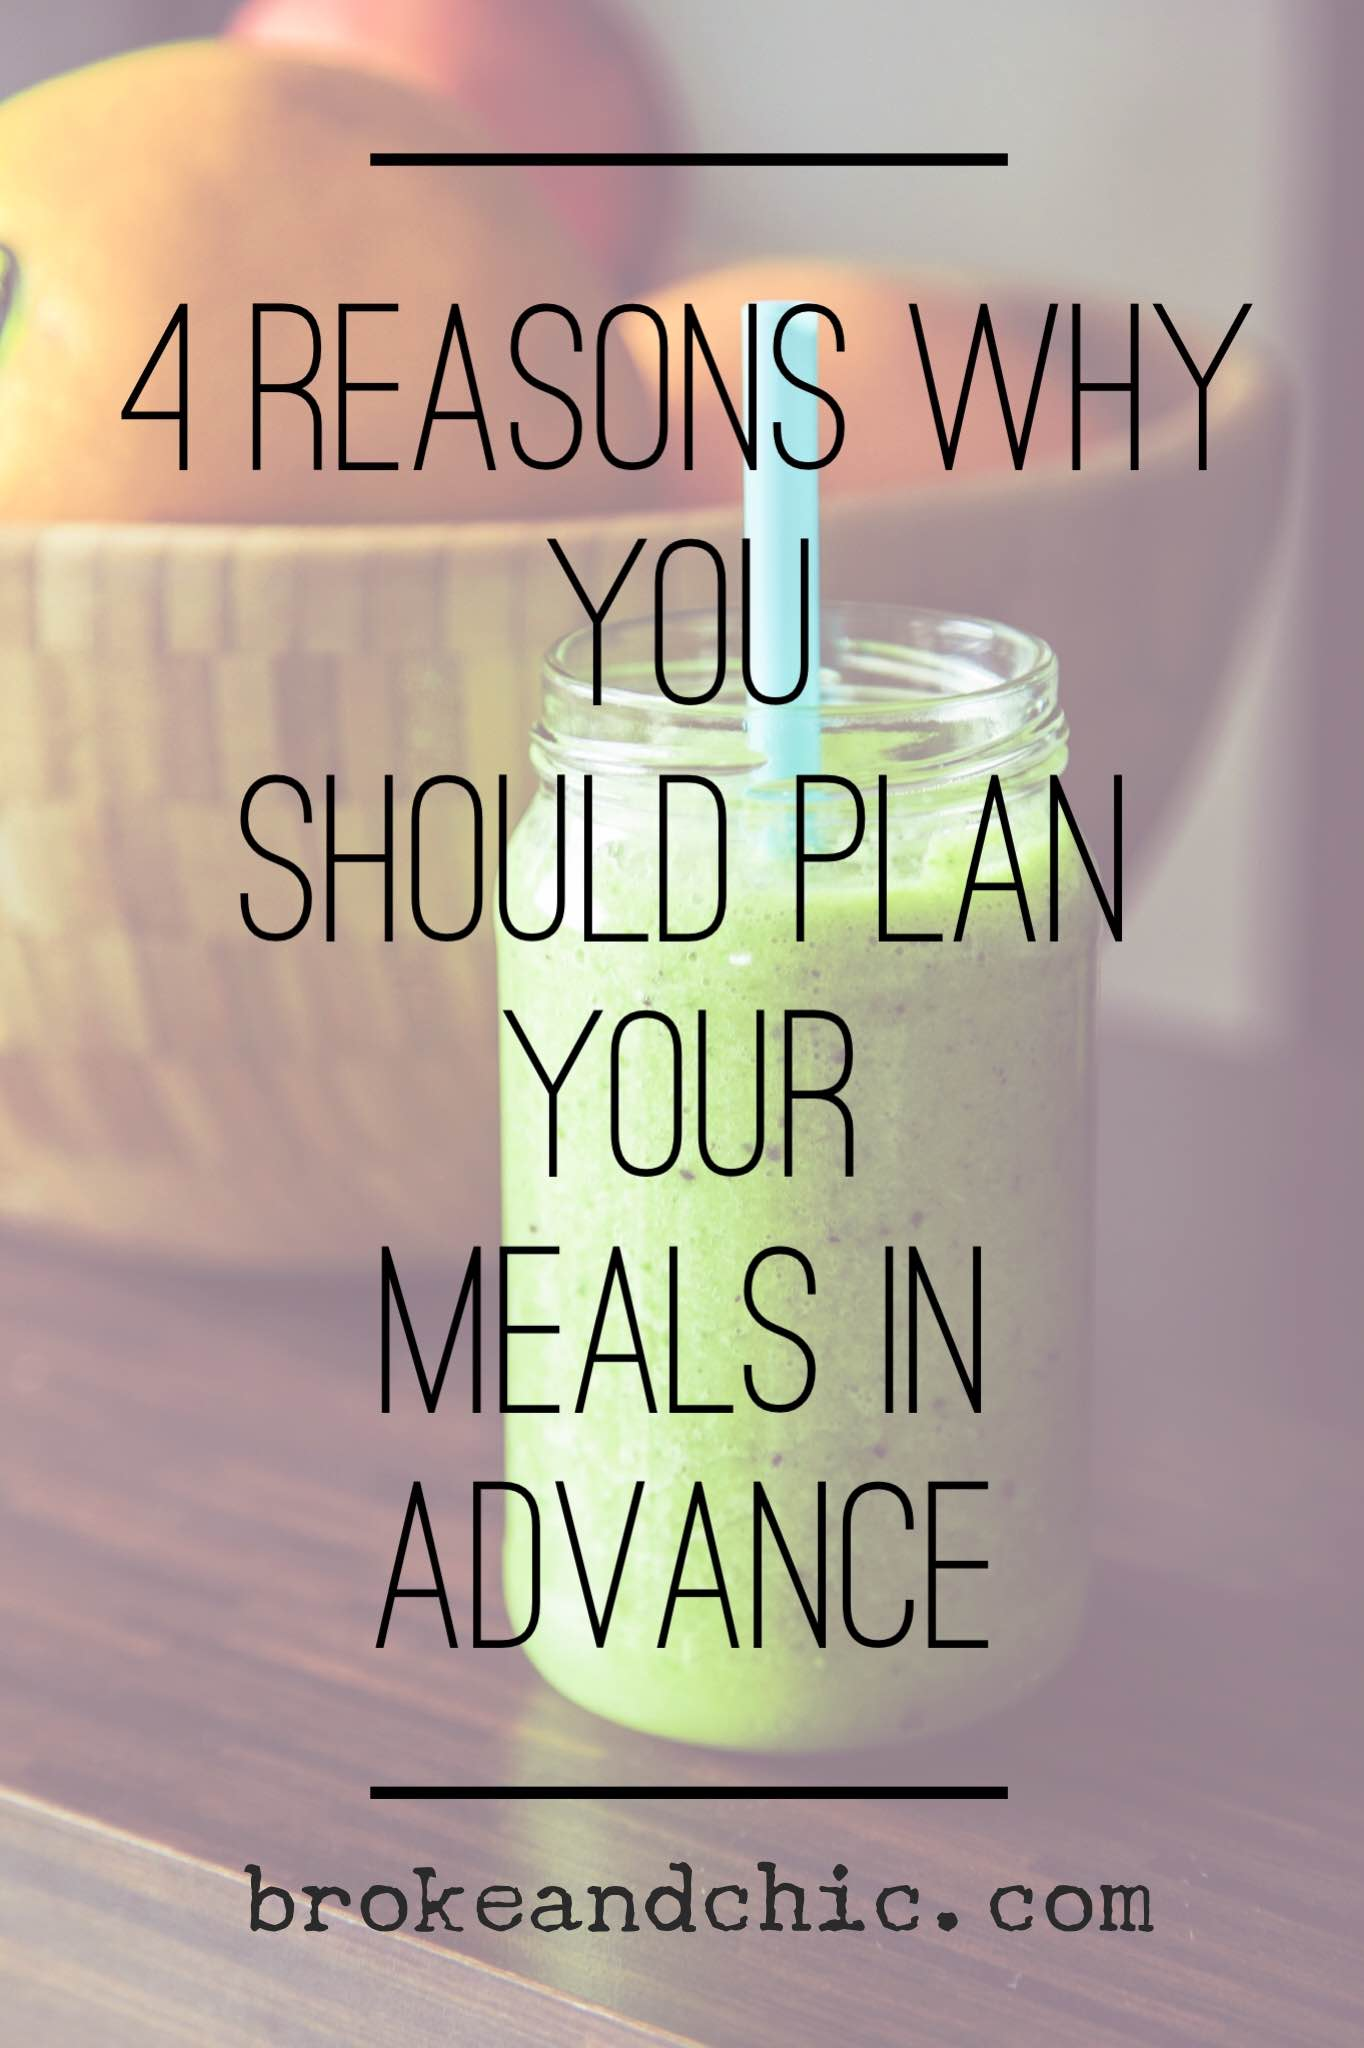 Meal Planning 101 // www.brokeandchic.com